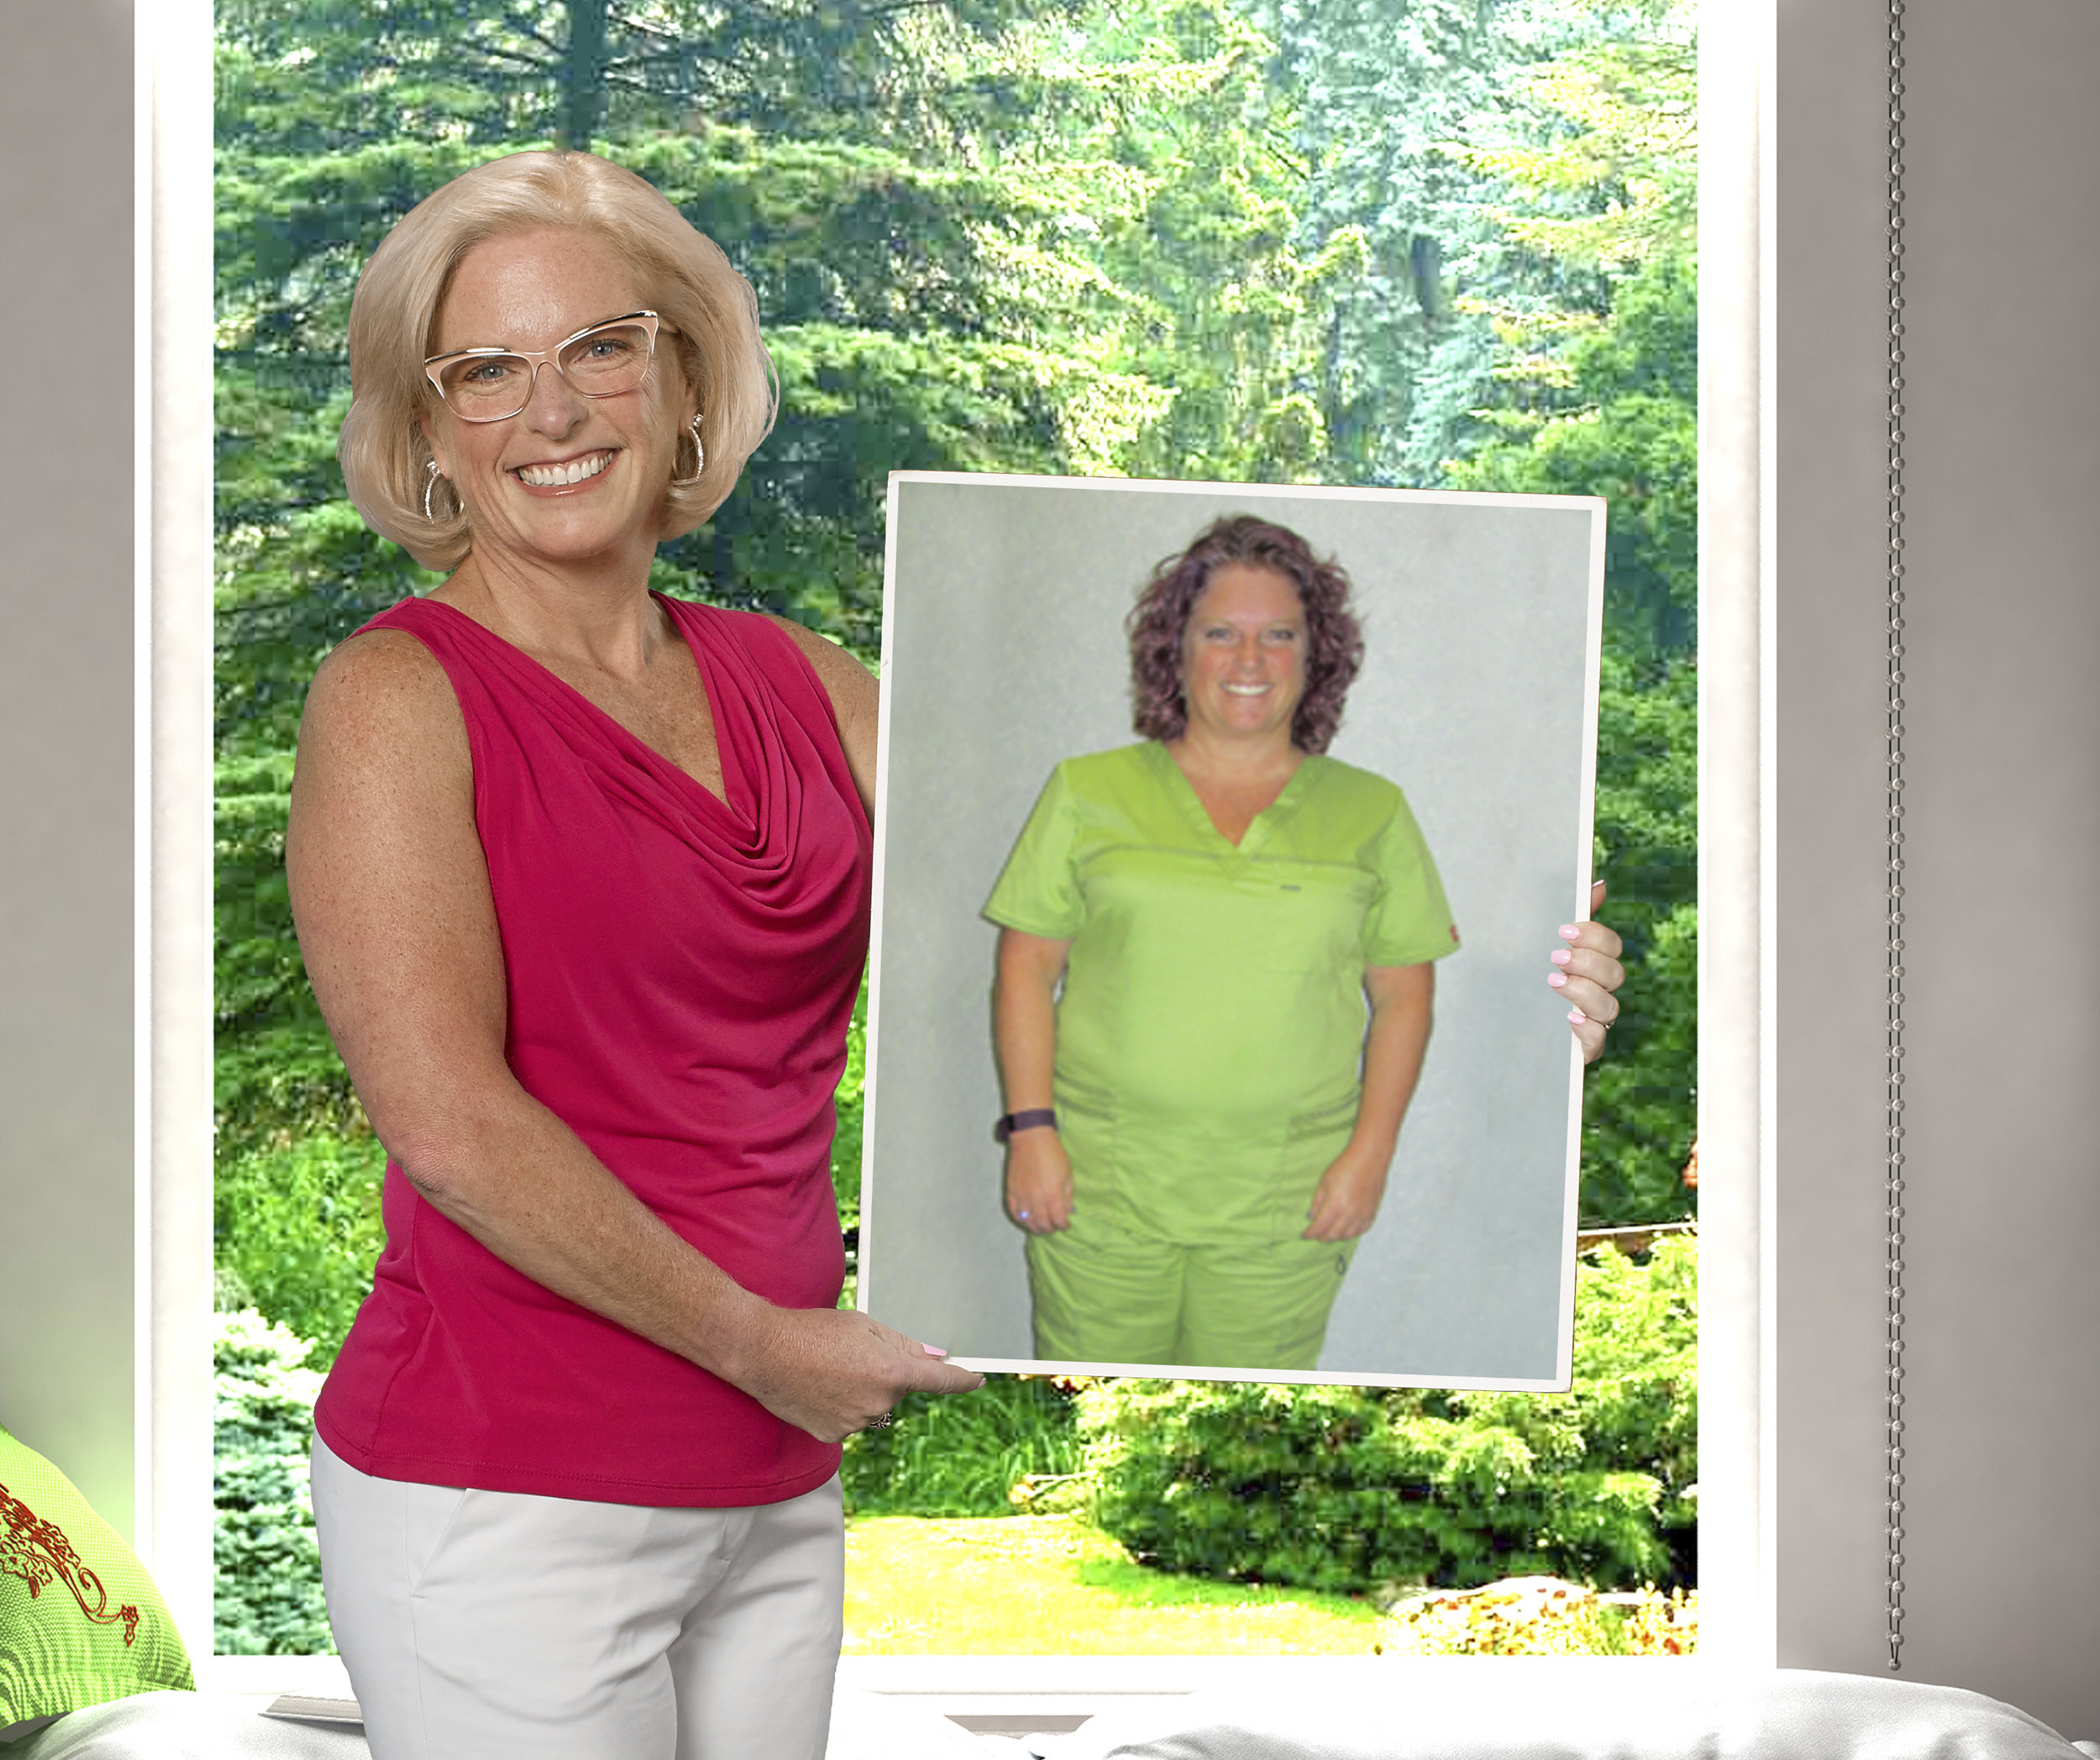 "Kelly H. lost 59 lbs. in 26 weeks at MWLC Warren* - ""I never realized how much my weight bothered me until I lost it and now I can't believe I lived with it for so long."""